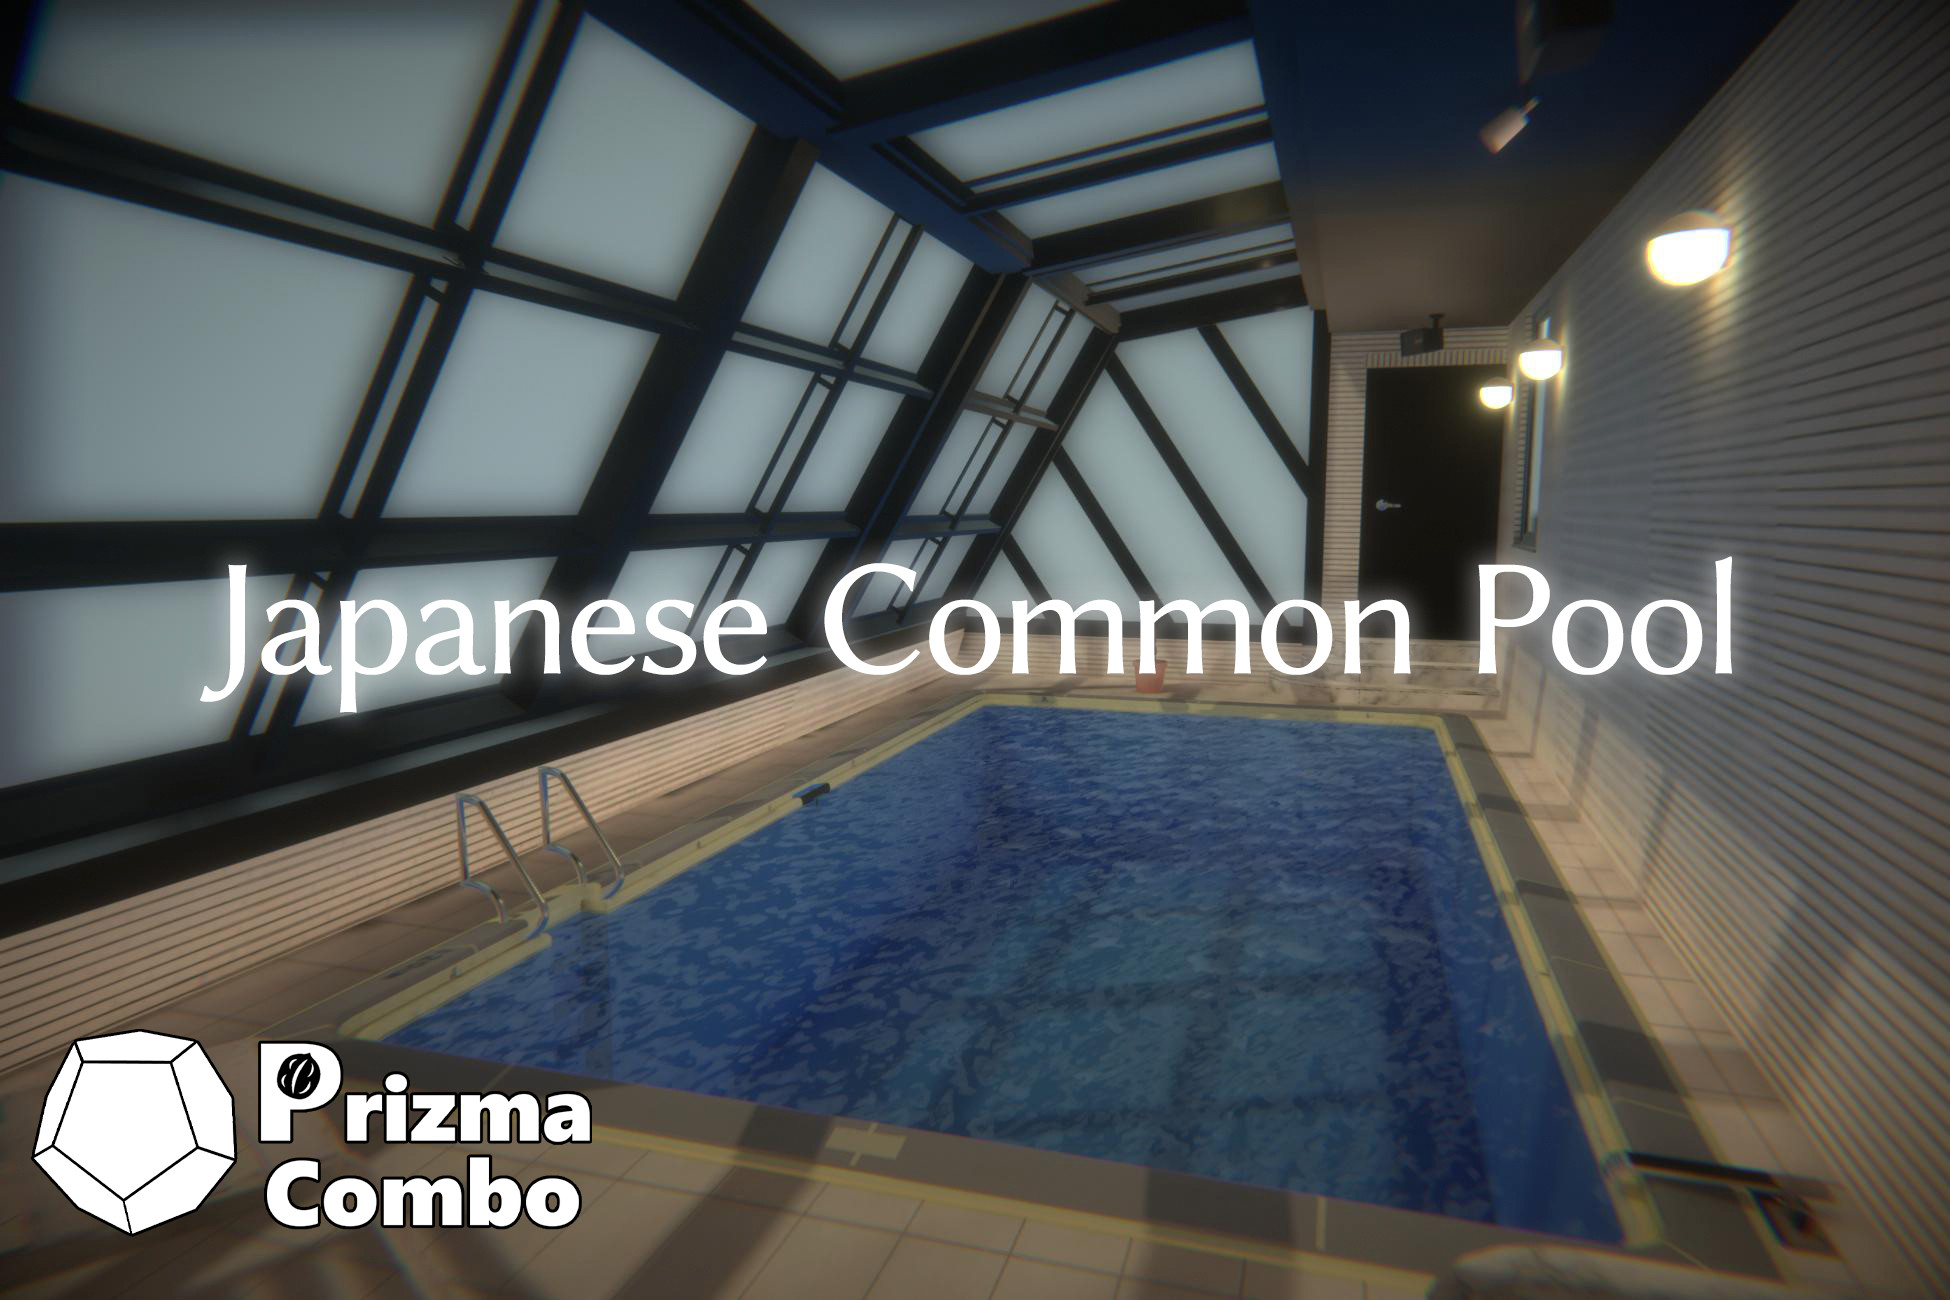 Japanese Common Pool